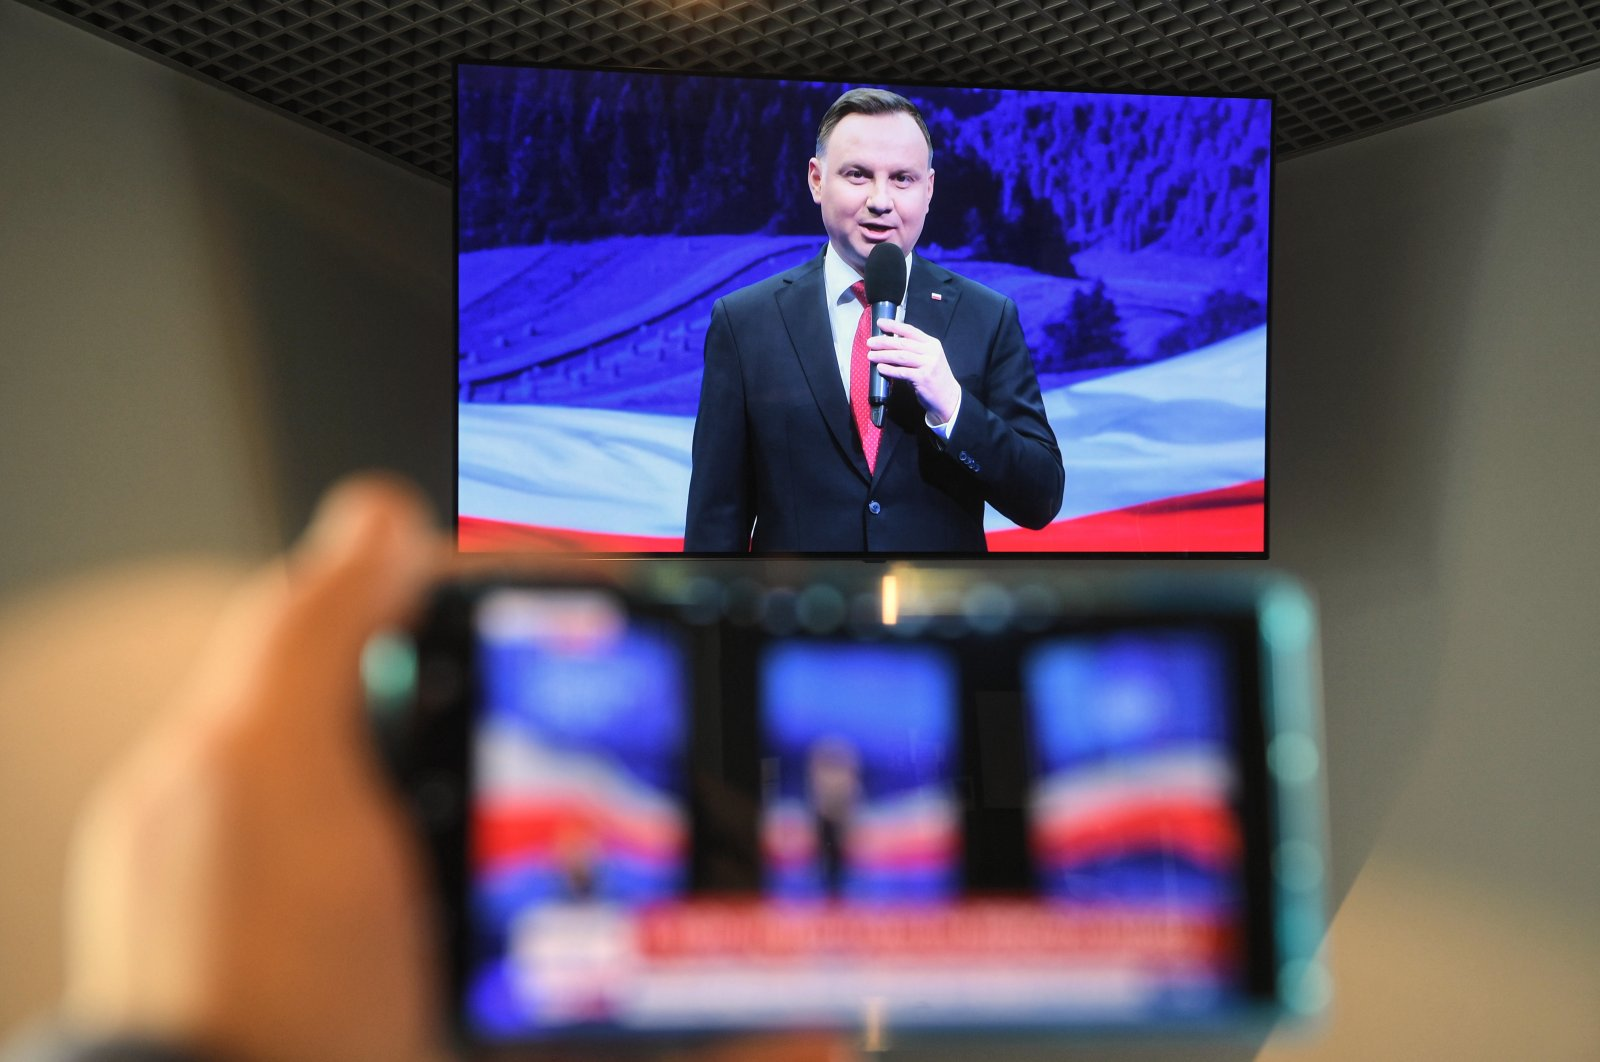 A television screen shows Polish President Andrzej Duda during the broadcast from the program convention in the village of Szeligi, Poland on May 1, 2020. (EPA Photo)